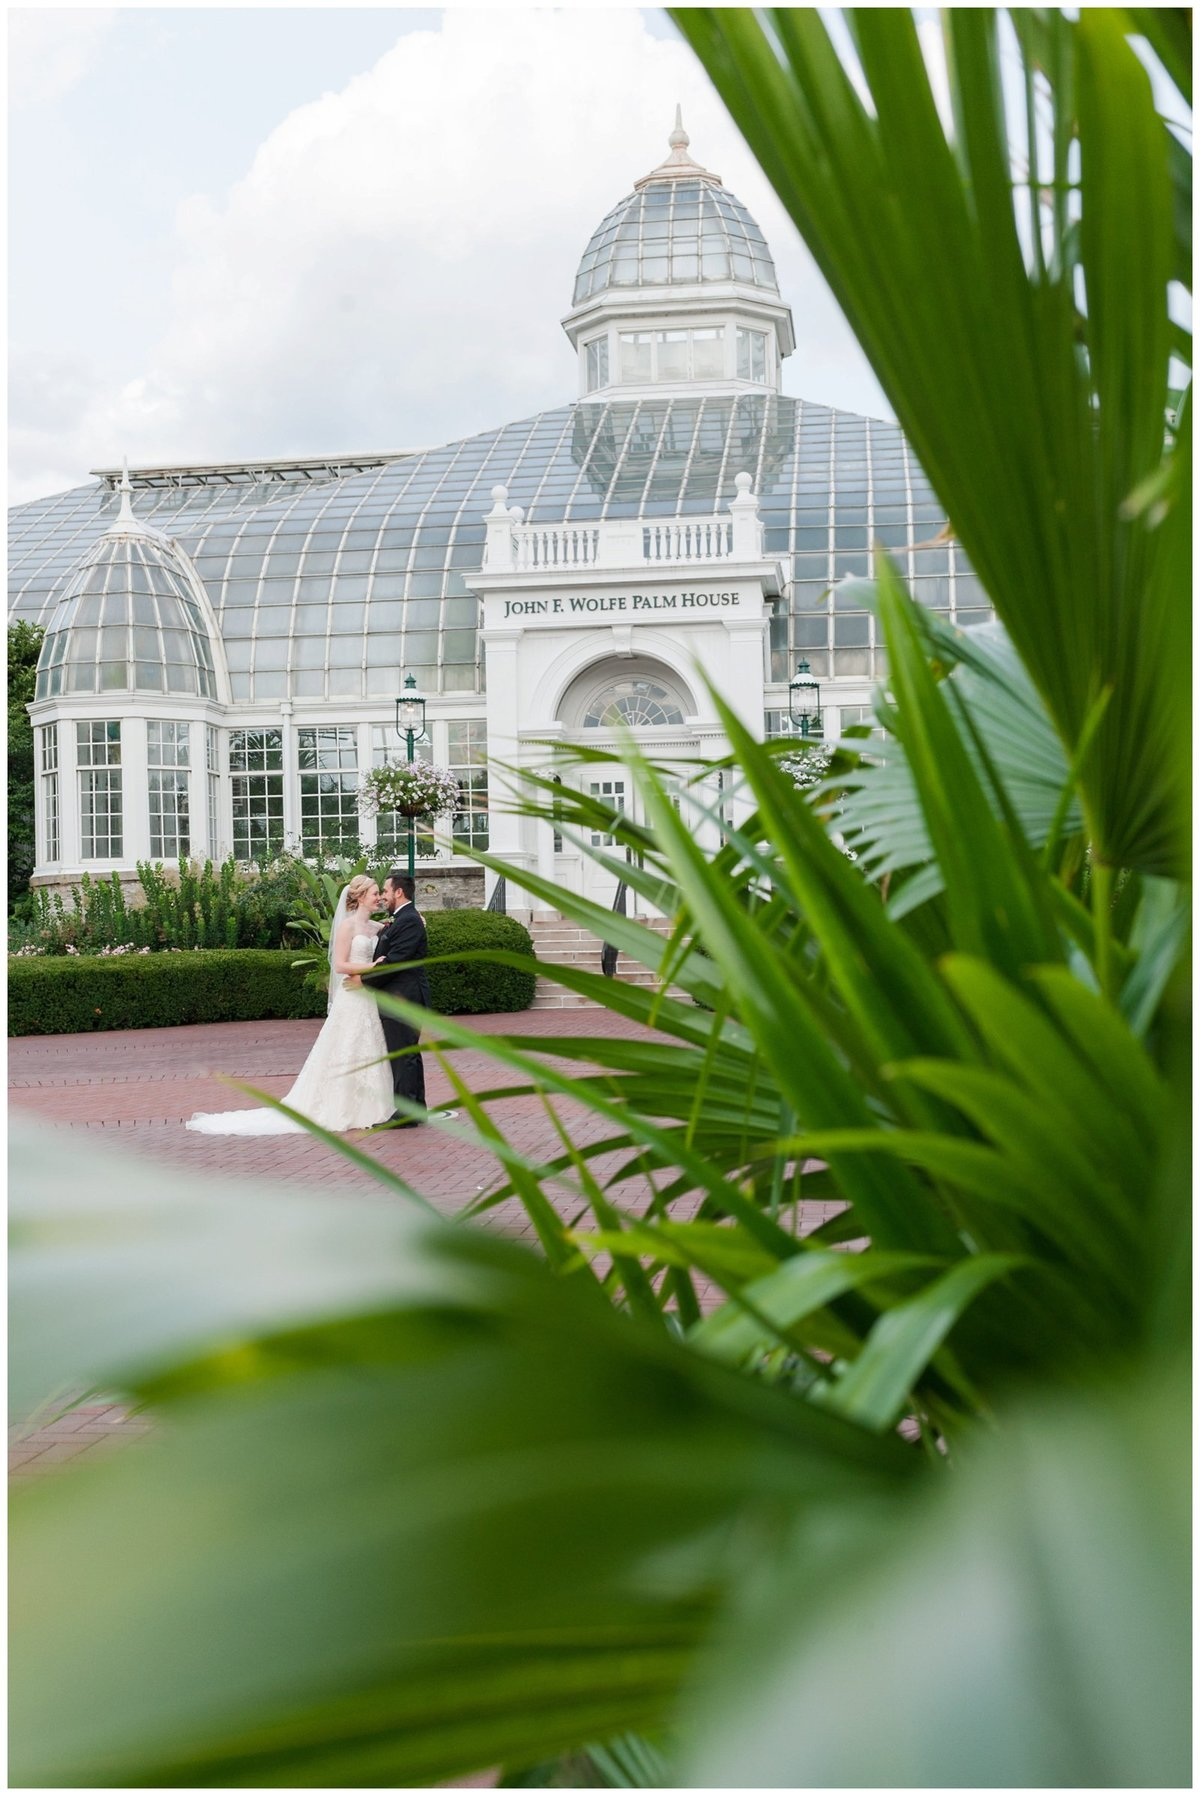 Franklin Park Conservatory Wedding The Palm House Bridal Garden Grove_0102